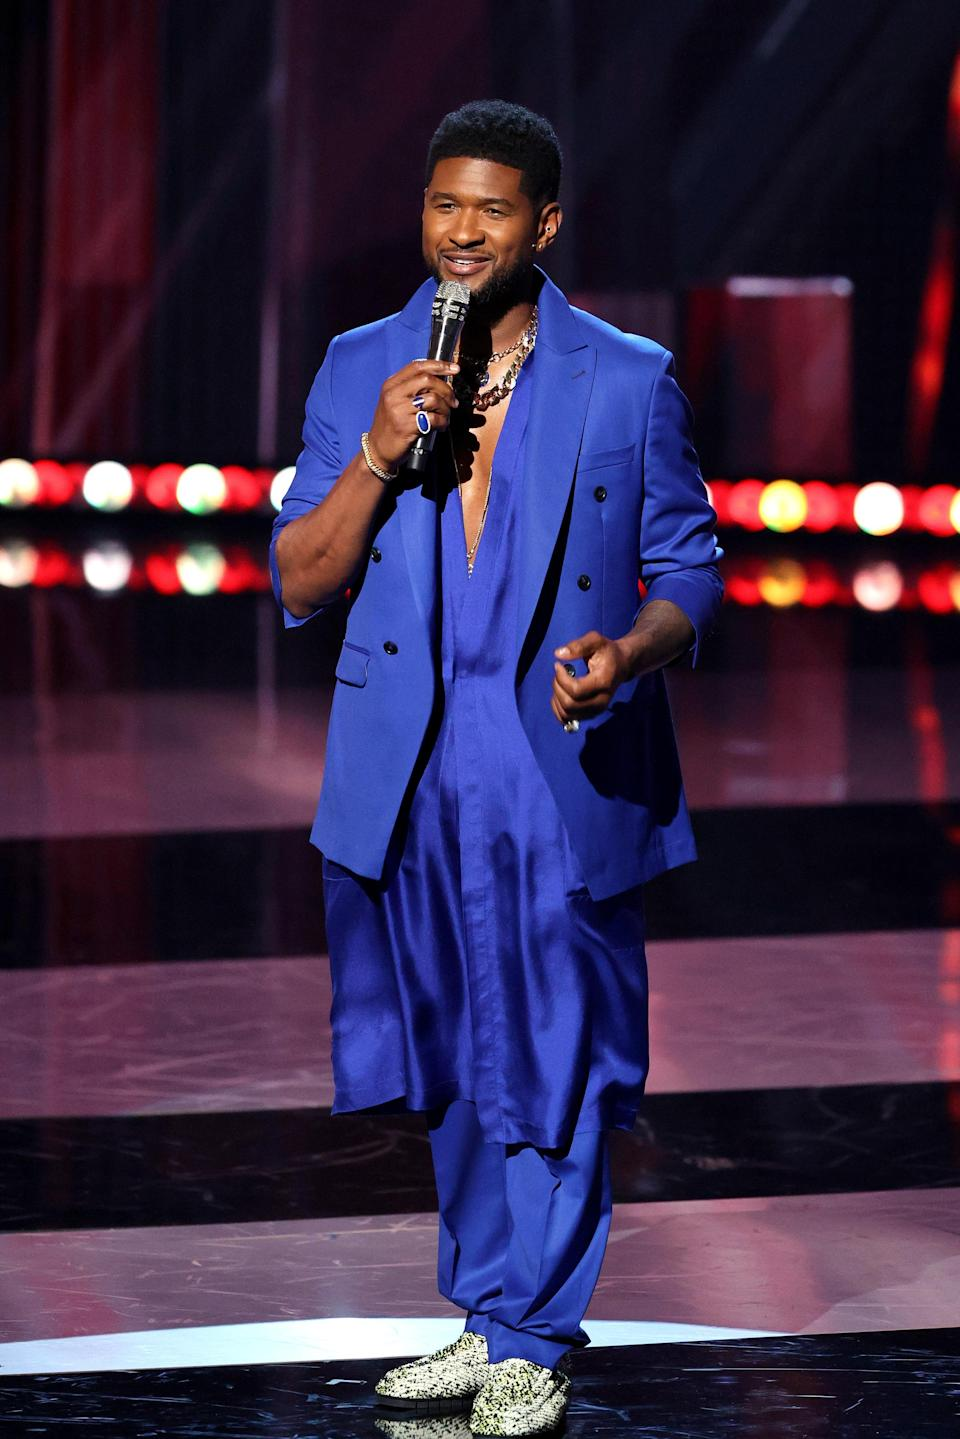 One of his many outfit changes featured an entirely electric blue look with a chunky gold chain and a bare chest. A look that's proving to be pretty popular!